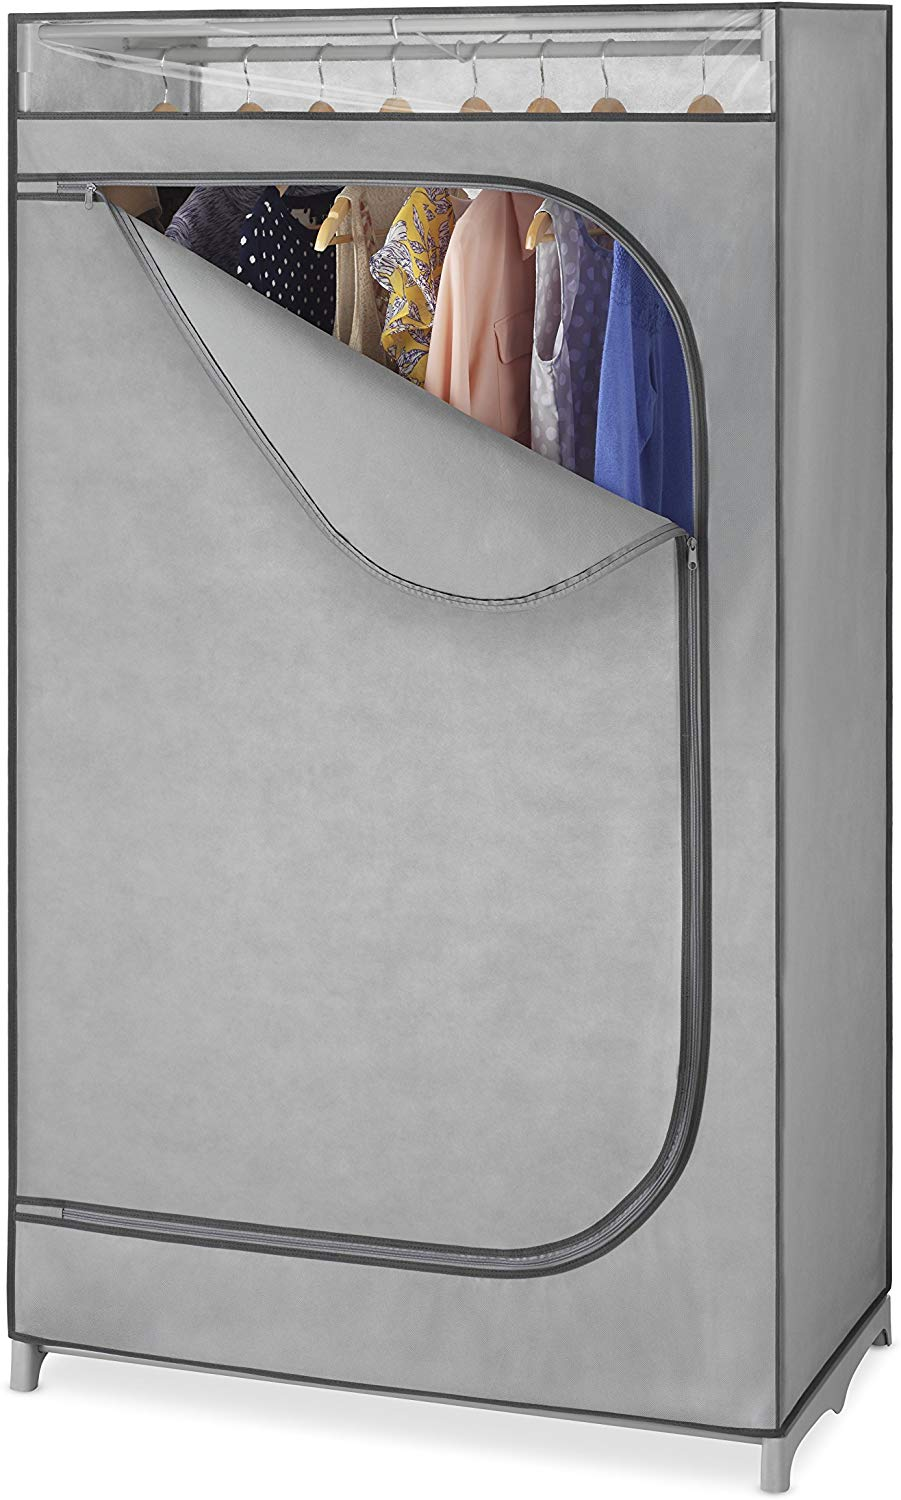 Whitmor Portable Wardrobe Clothes Closet Storage Organizer with Hanging Rack